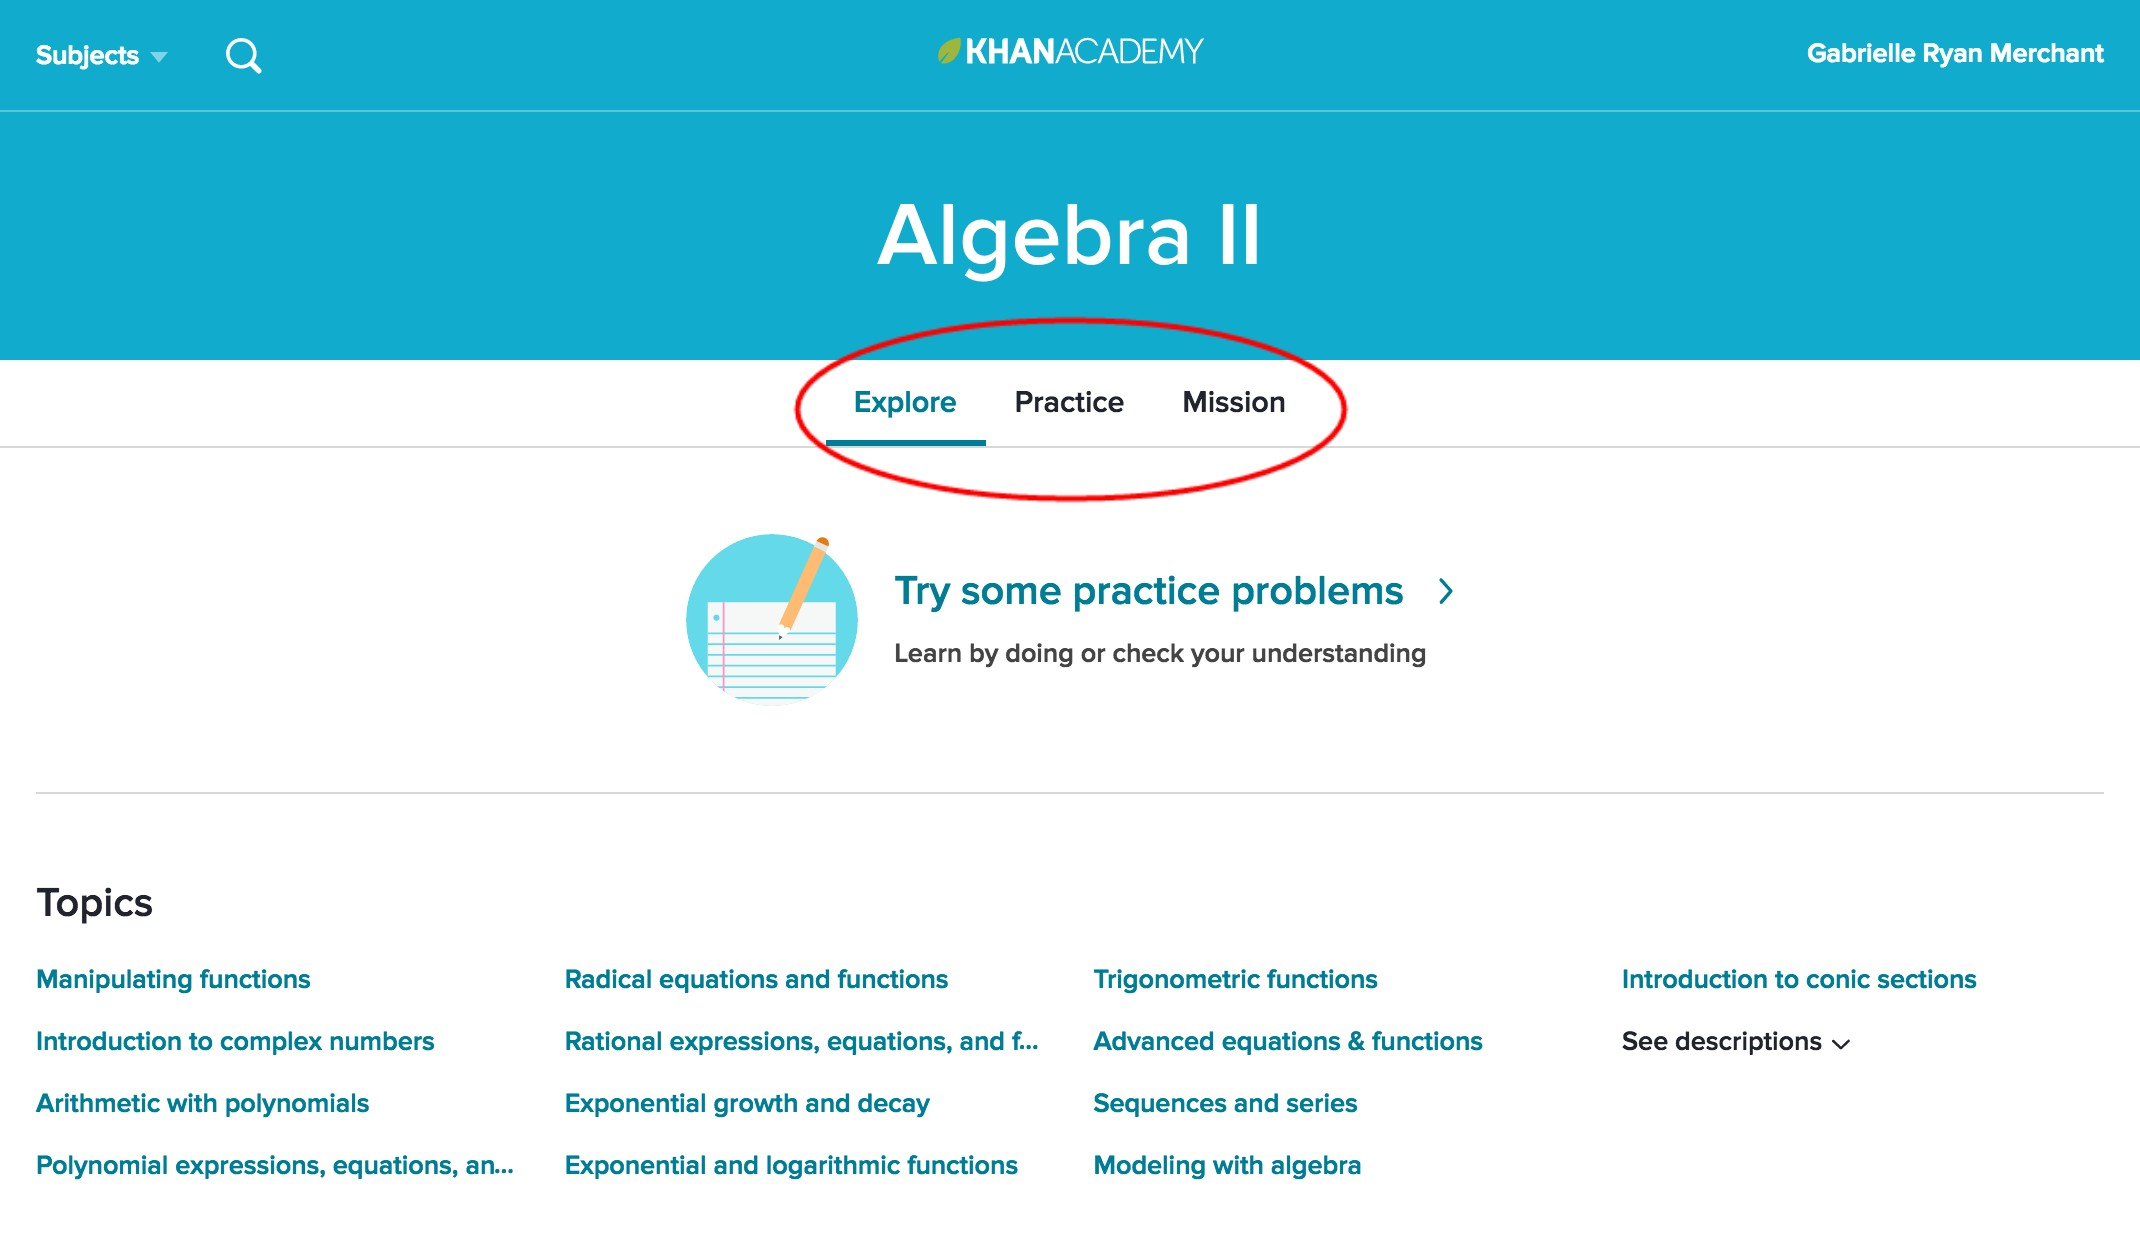 Khan Academy Screenshot of Algebra II page with Explore, Practice, and Mission circled in red